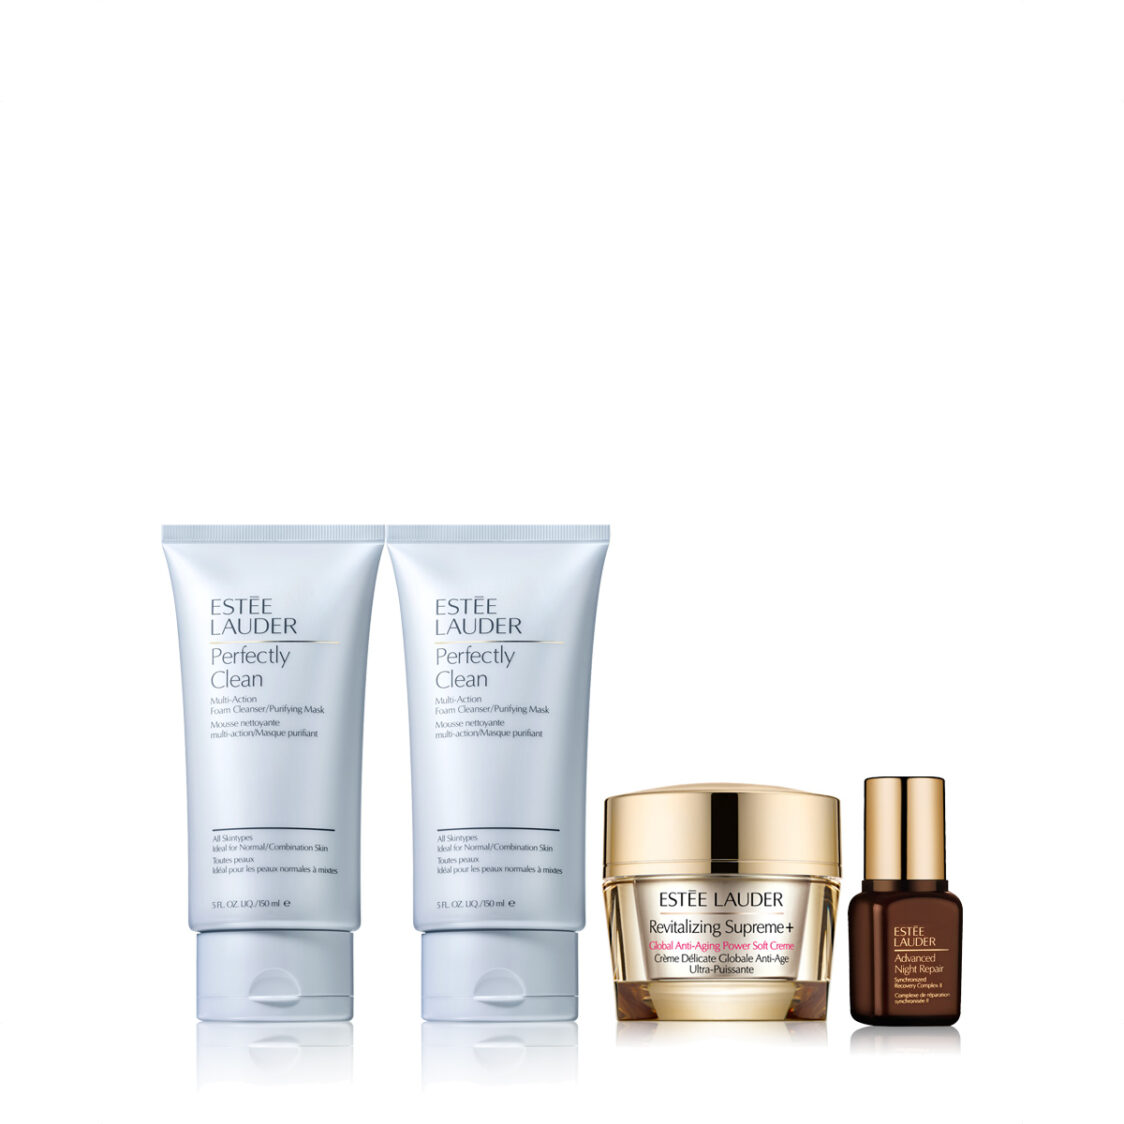 Estee Lauder Perfectly Clean Foaming Cleanser Set worth 164